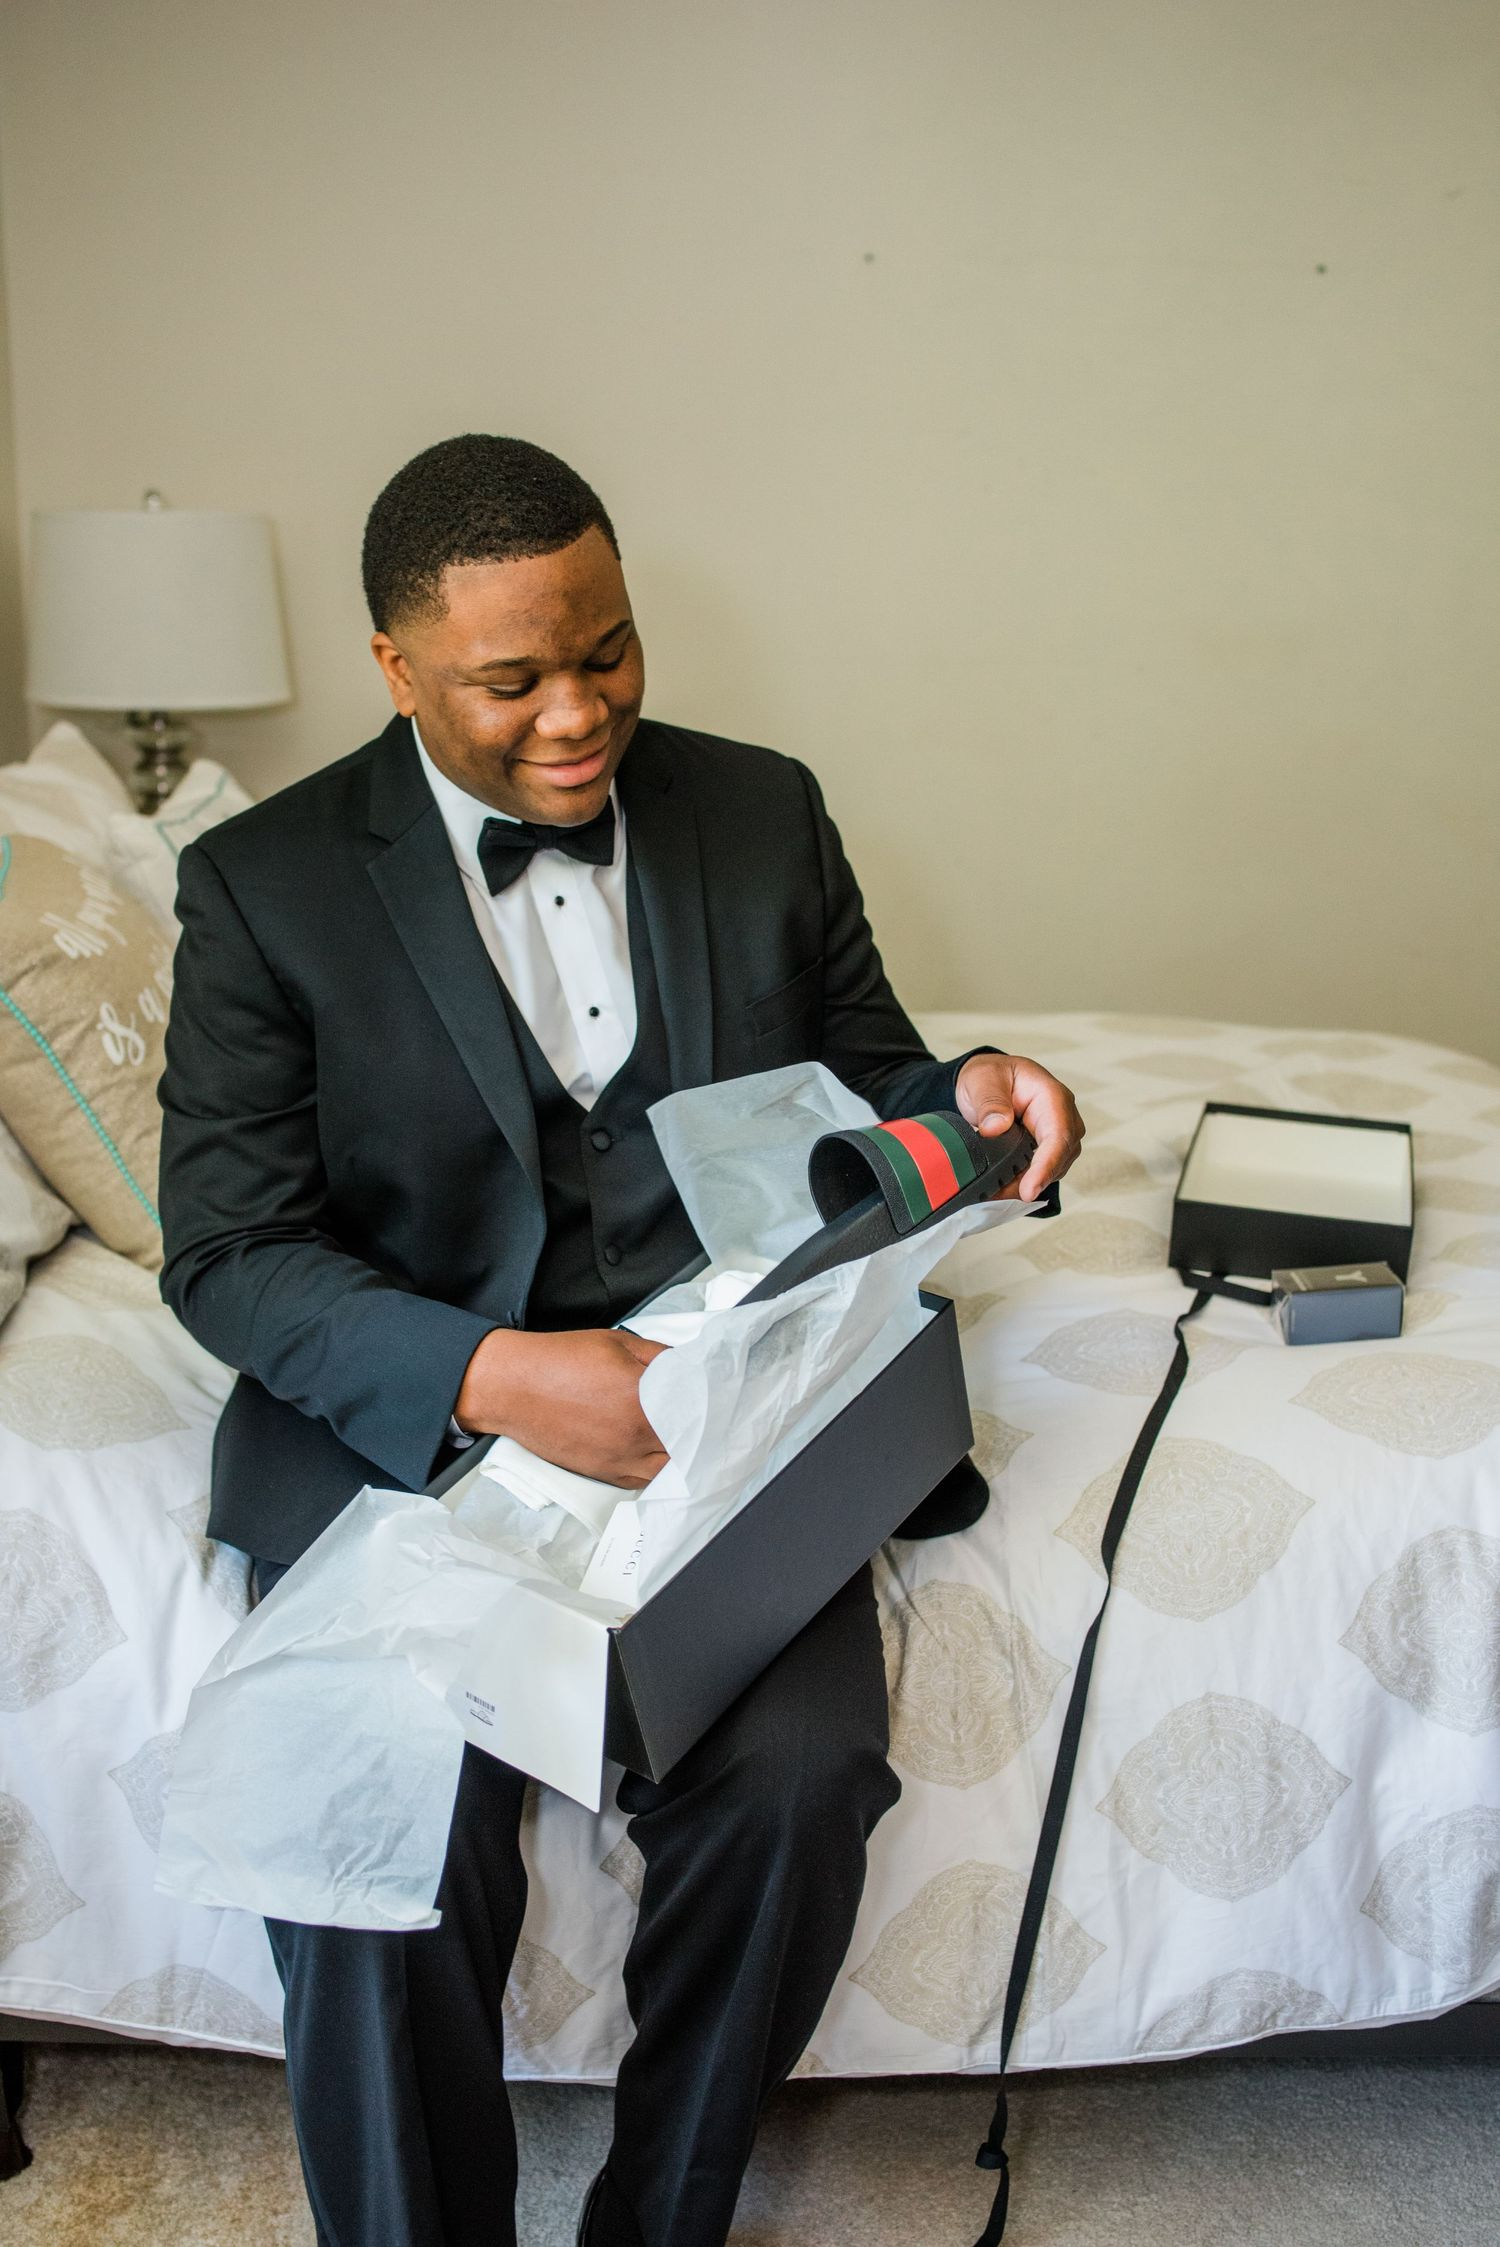 groom smiling opening wedding gift box